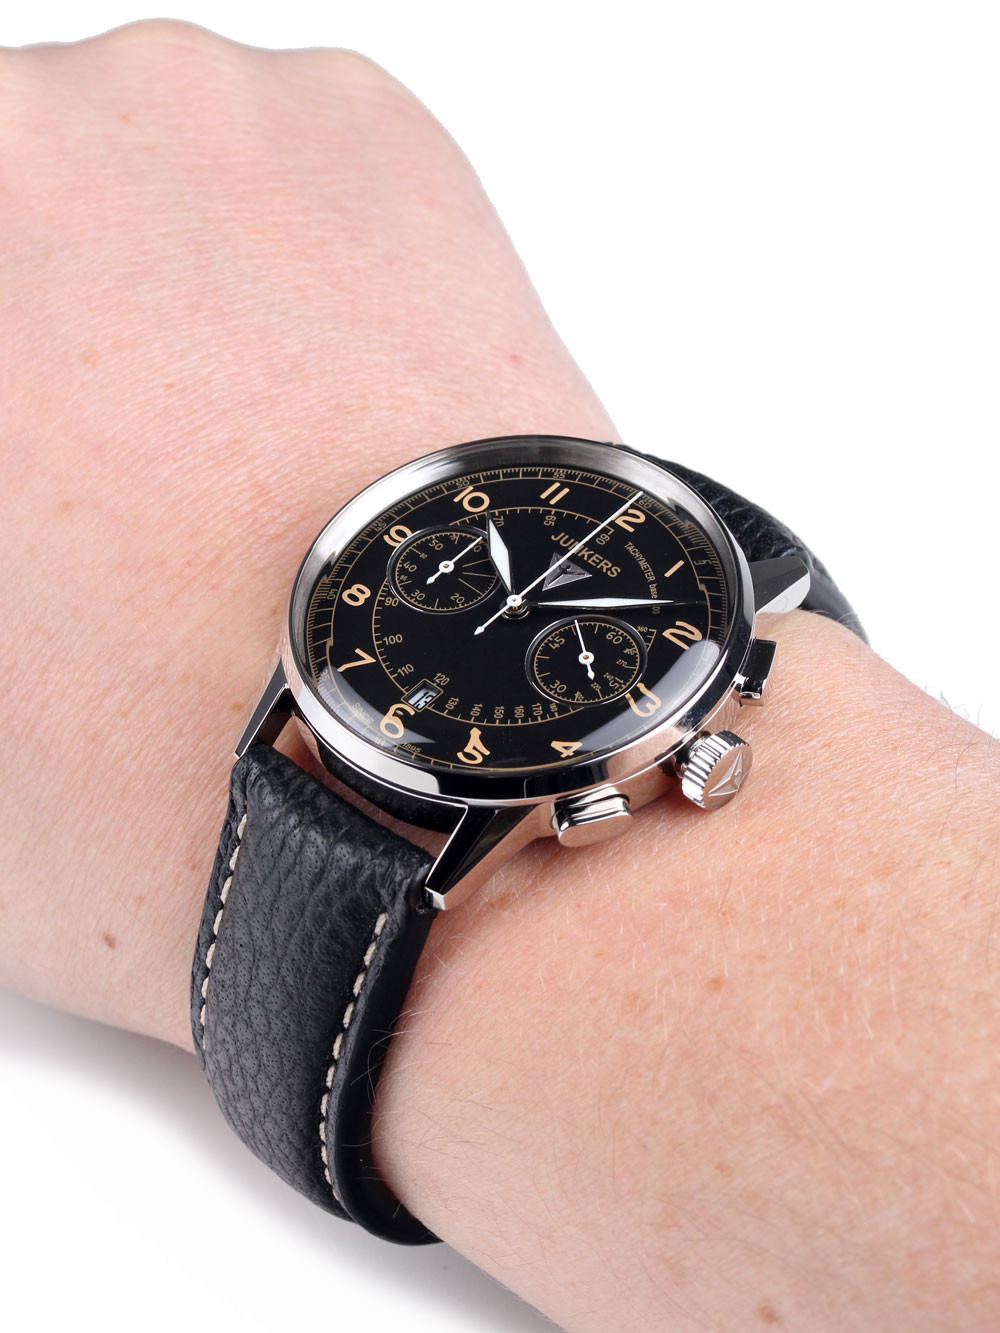 Junkers G38 Chronograph 6970-5 Black 42 mm 10 ATM